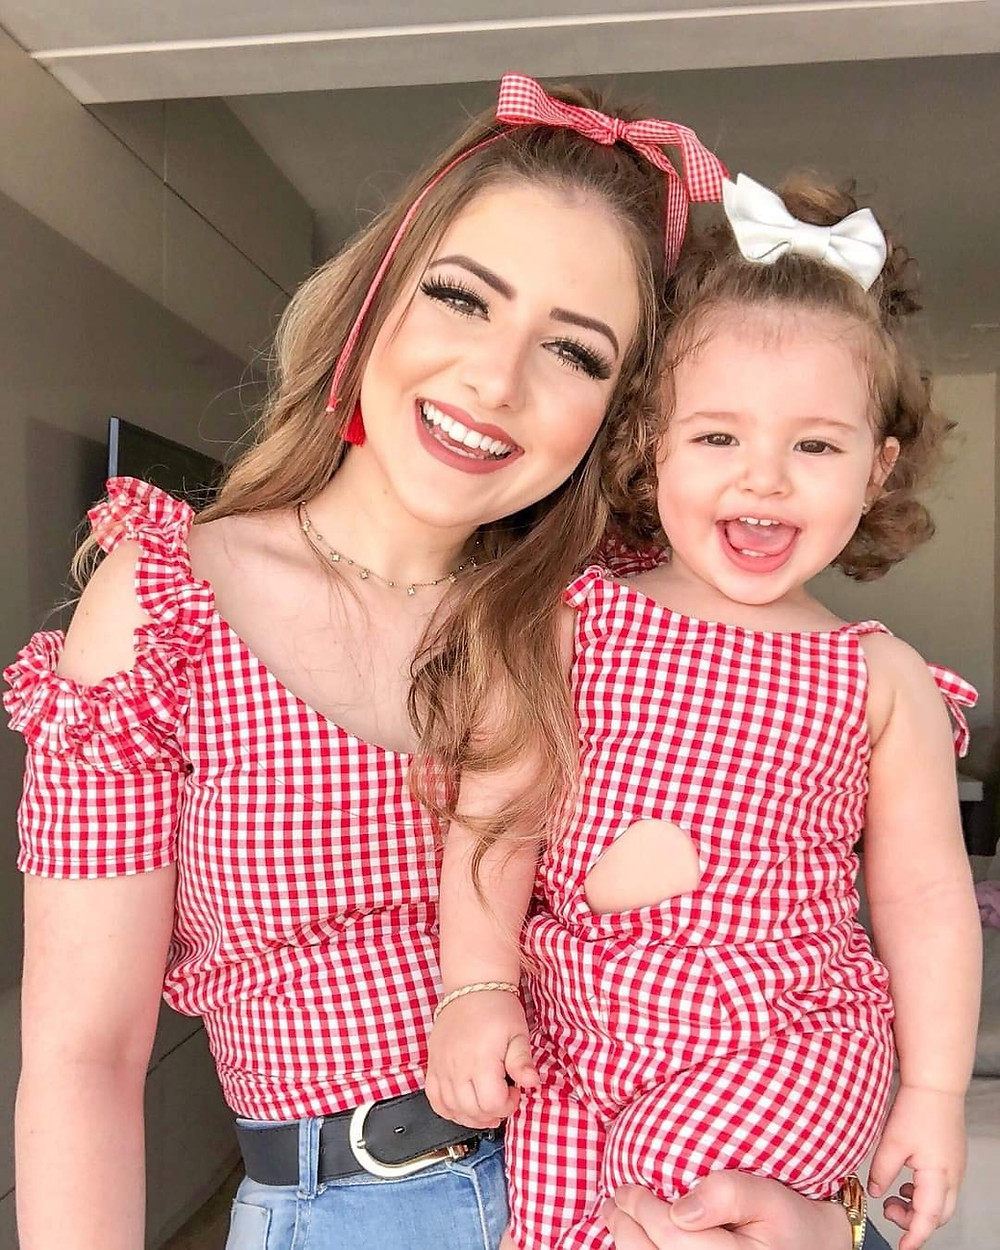 Picture Book of Adorable Mom & Daughter that's Winning Everyone's Heart in Social Media